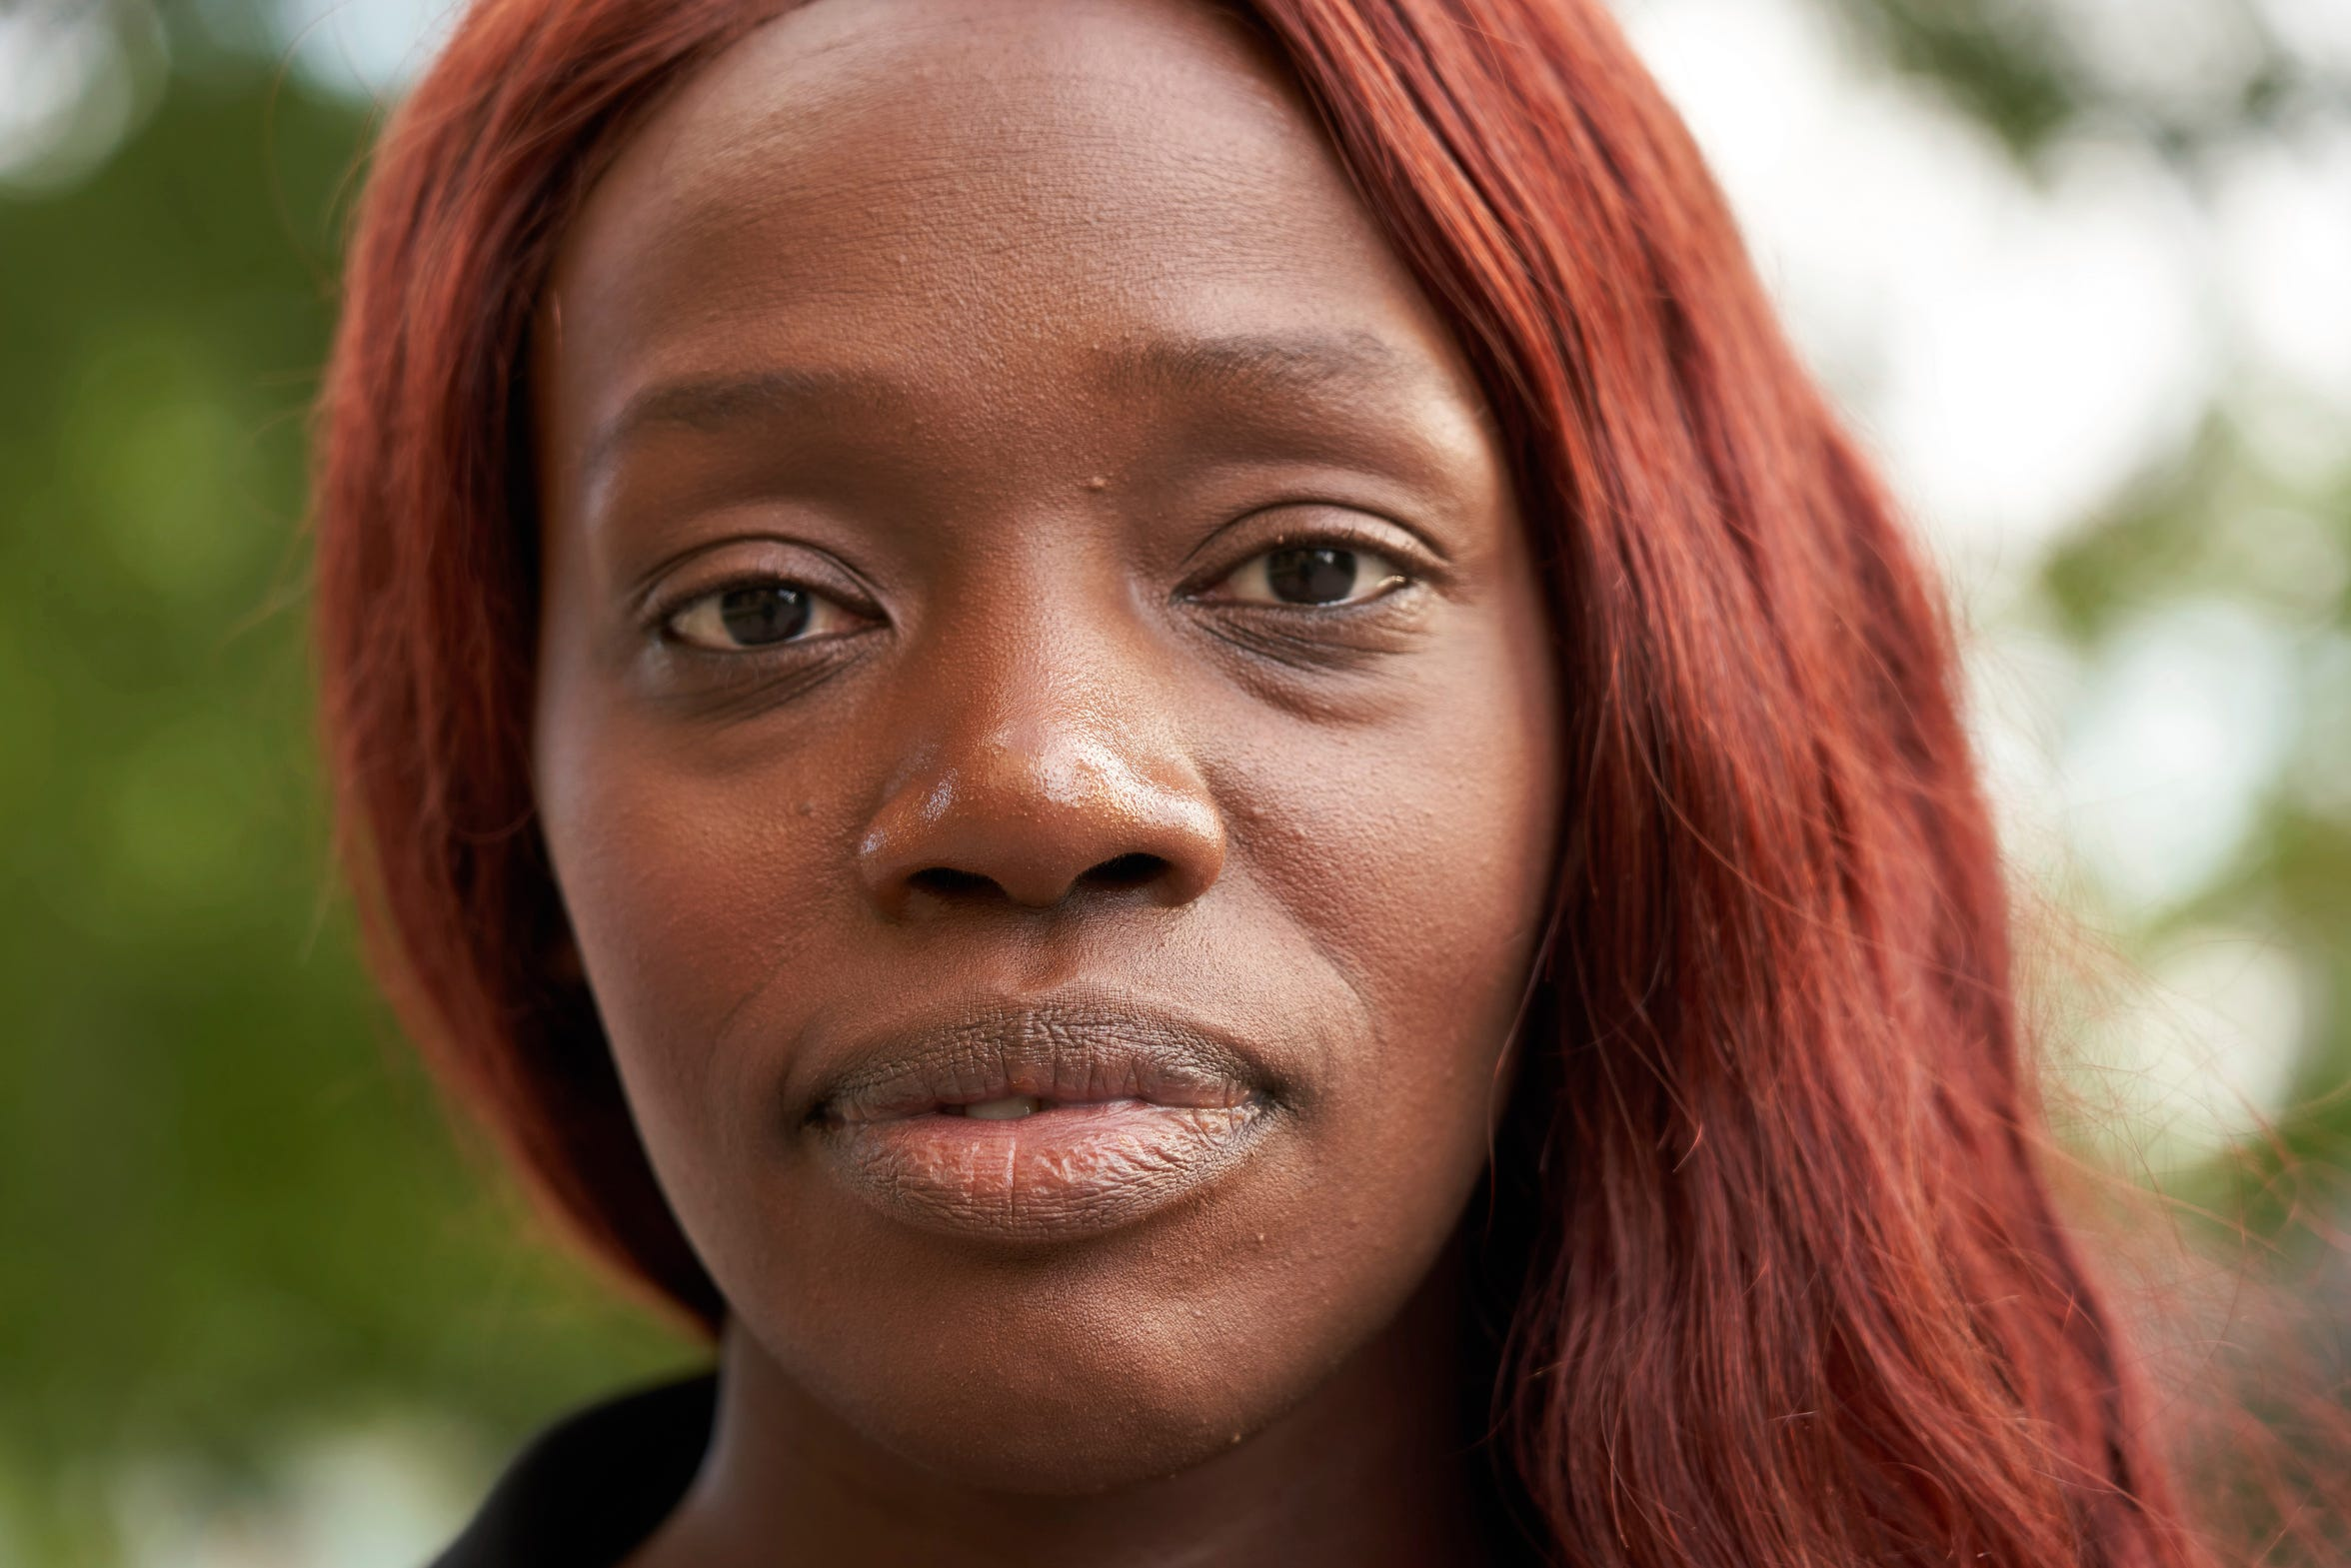 Aysha Jones stands for a portrait in Stockholm, Sweden on June 8, 2020. Born in Gambia, her experience with racism was that of a first-generation outsider - she remembers classmates throwing burnt Swedish meatballs at her, considering her worth nothing more.